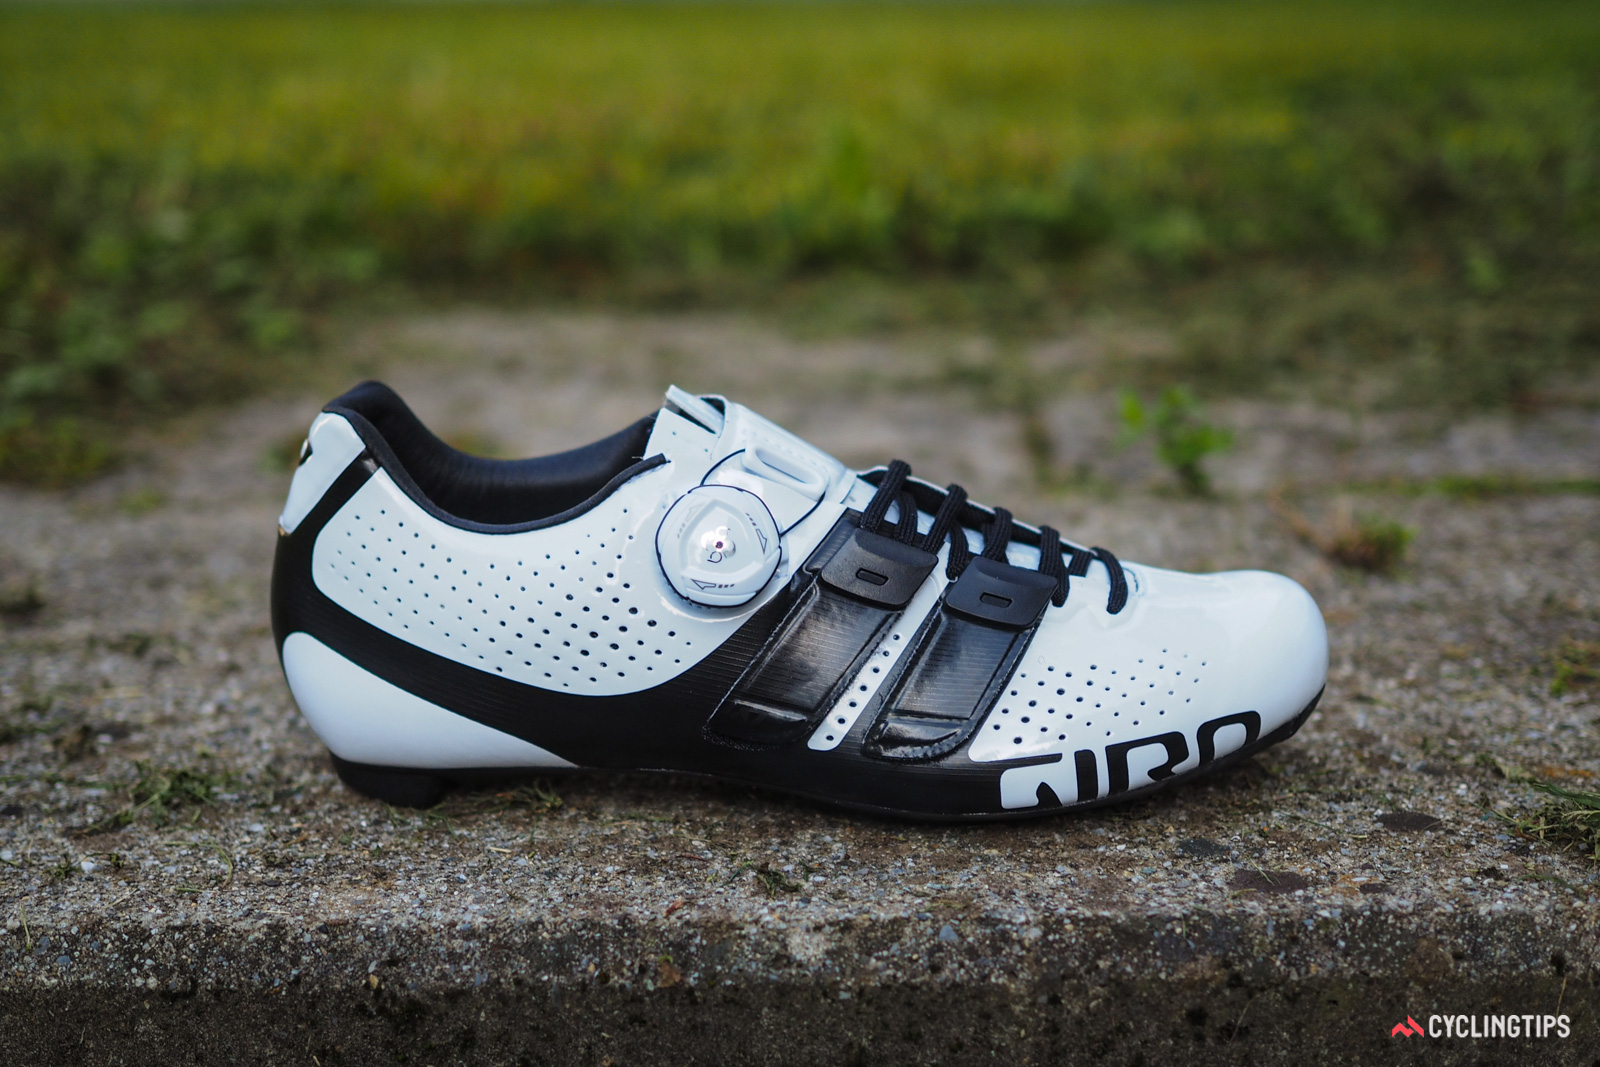 The new Giro Factress Techlace is built on a women-specific last with a lower overall volume and a narrower heel. Color options will be limited to just this white and black layout. Retail price will be US$350 / €350 when it begins arriving in shops in October. UK and AU pricing is TBC.